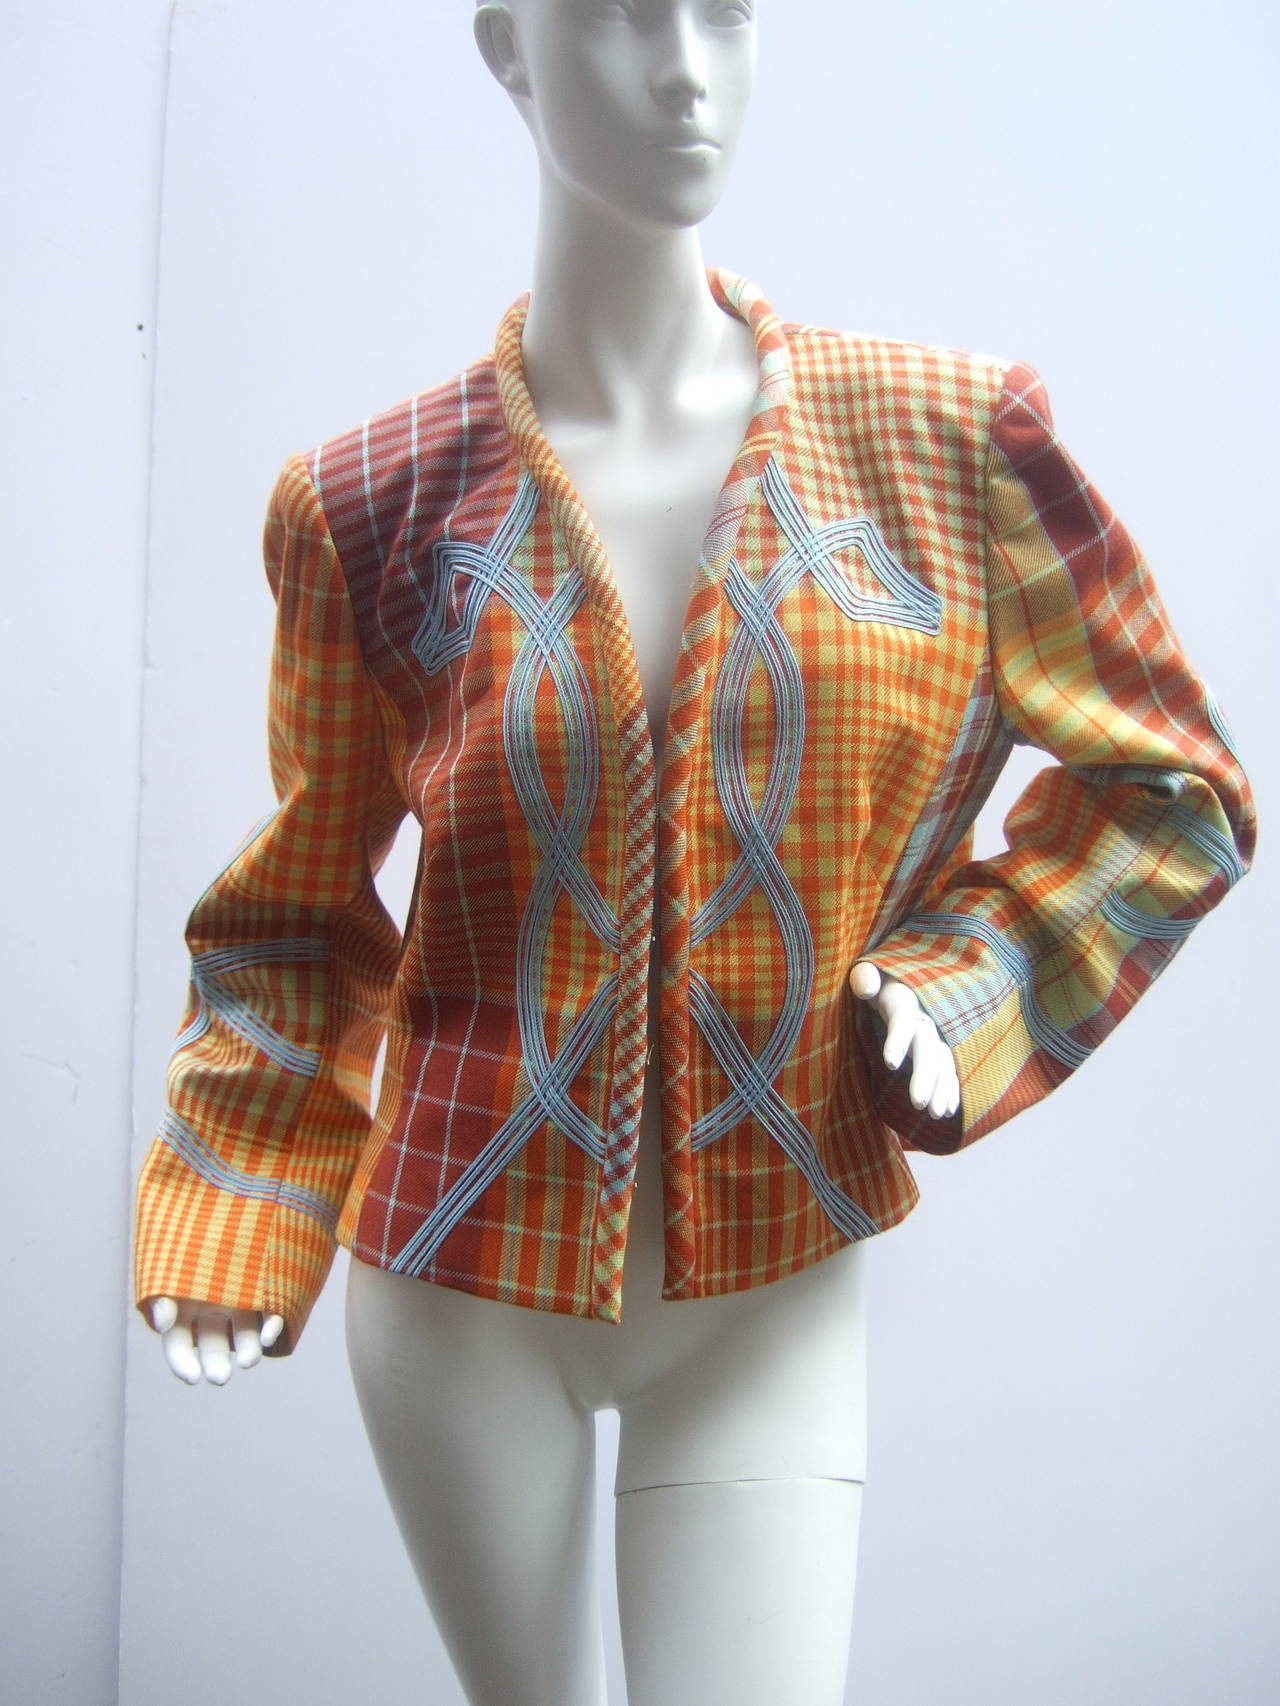 Christian Lacroix Paris Plaid Wool Jacket Size 46 c 1990 For Sale 2